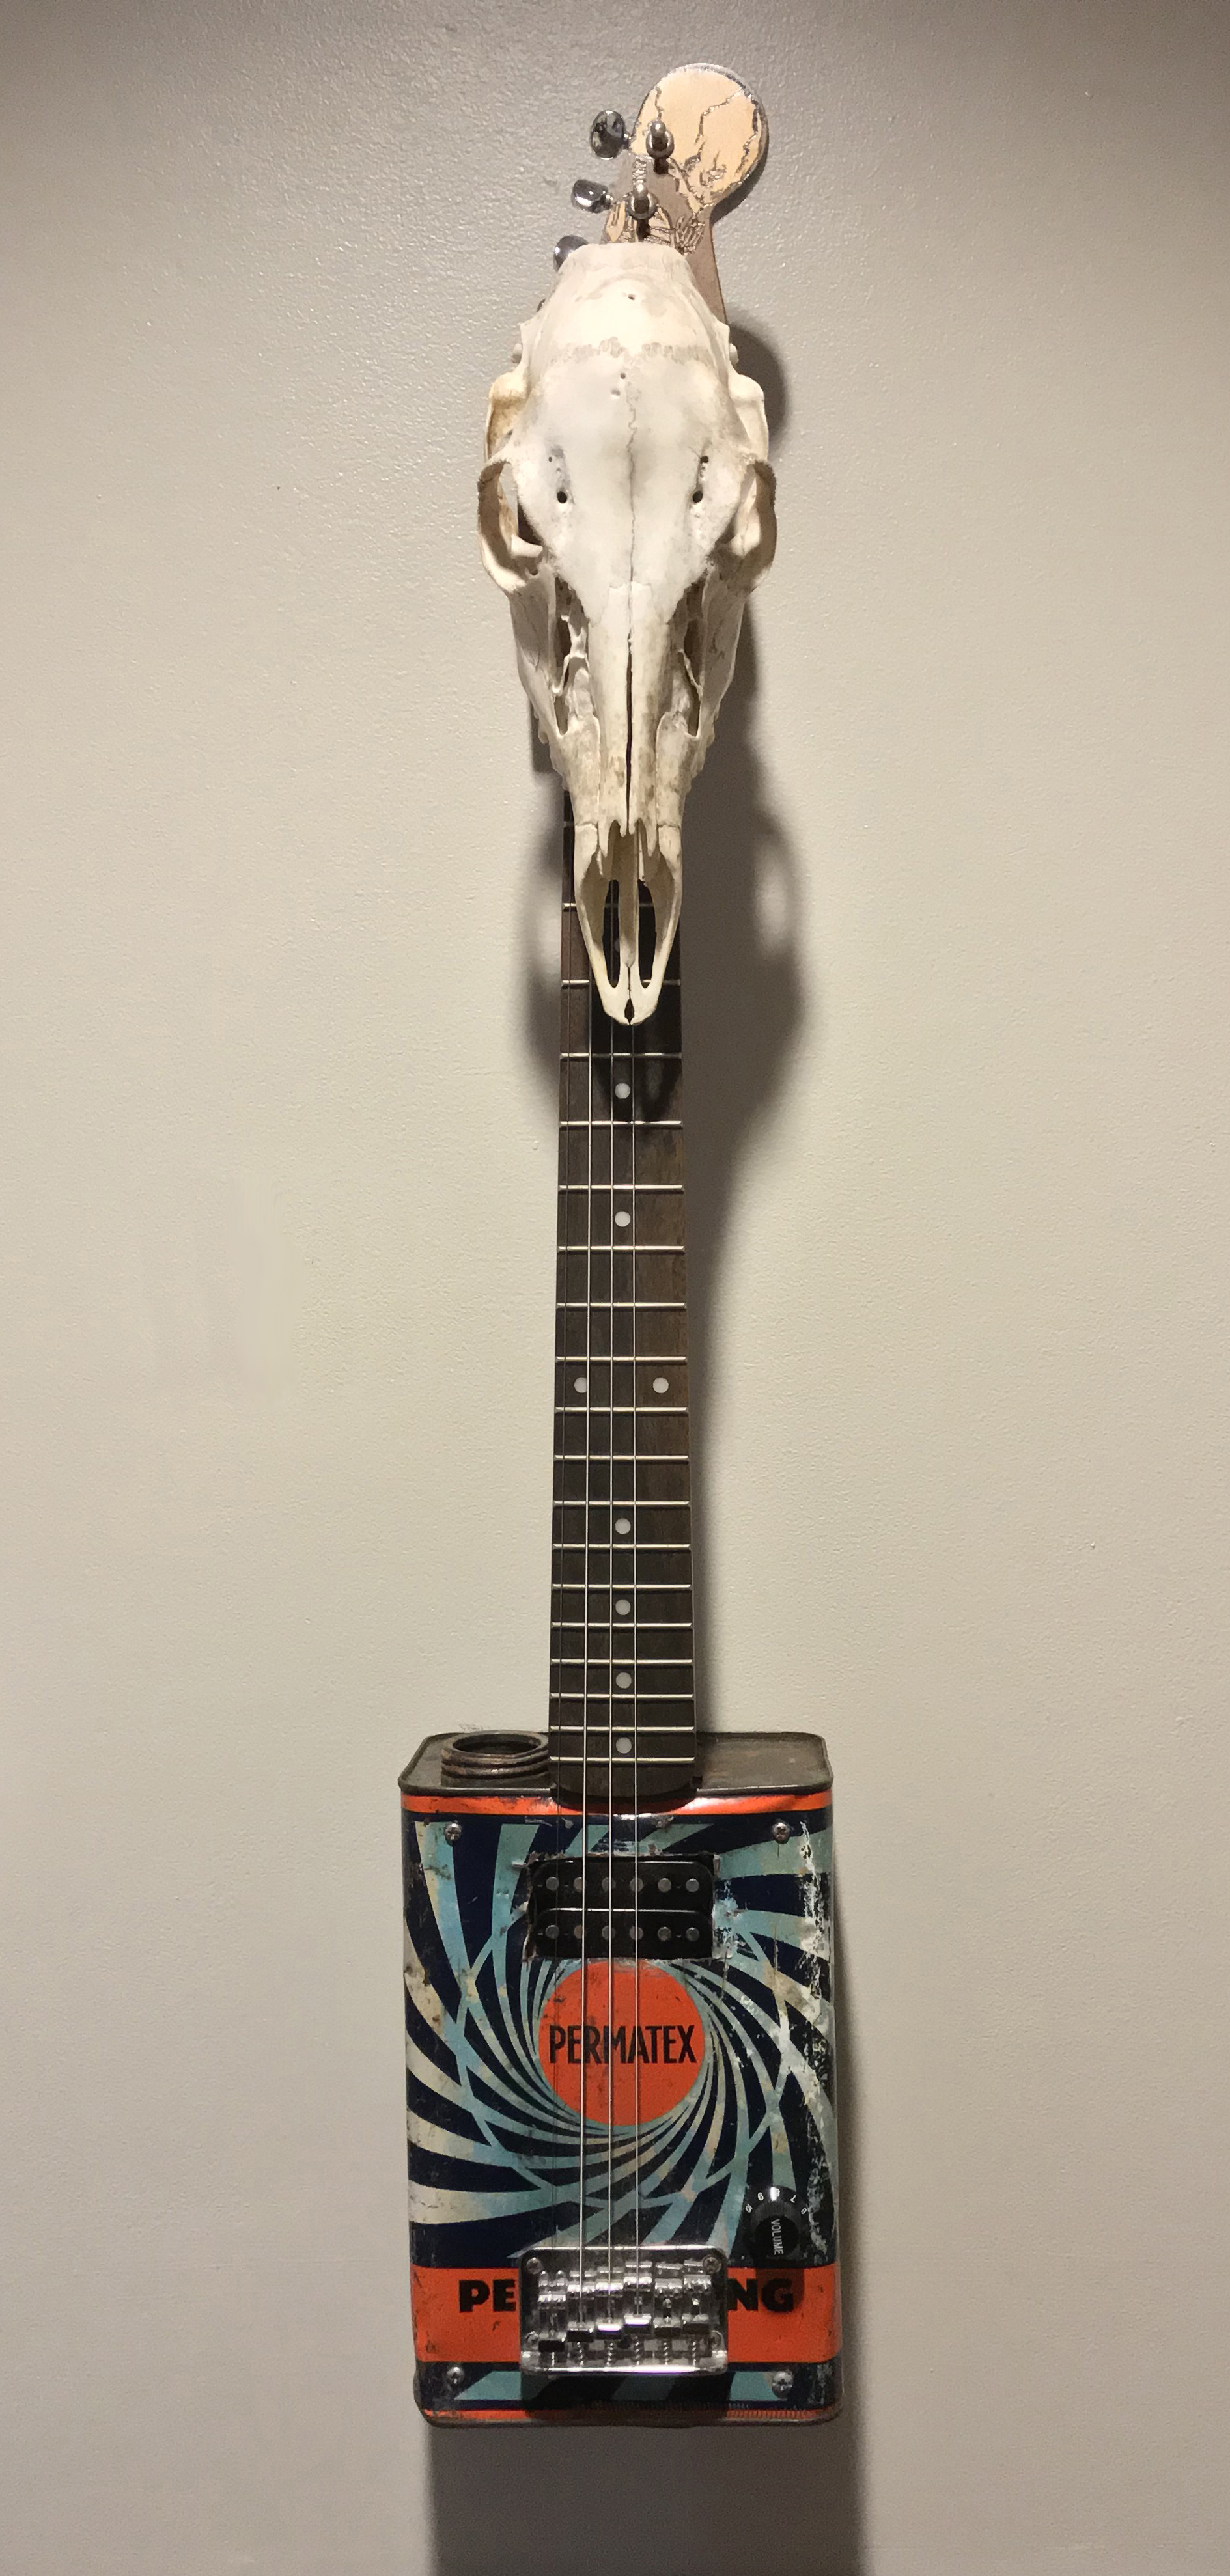 Permatex   -not for sale- vintage oil can, guitar neck, humbucker,bridge,  pecan body,  potentiometers,woodstain,  wood seal, pyrography